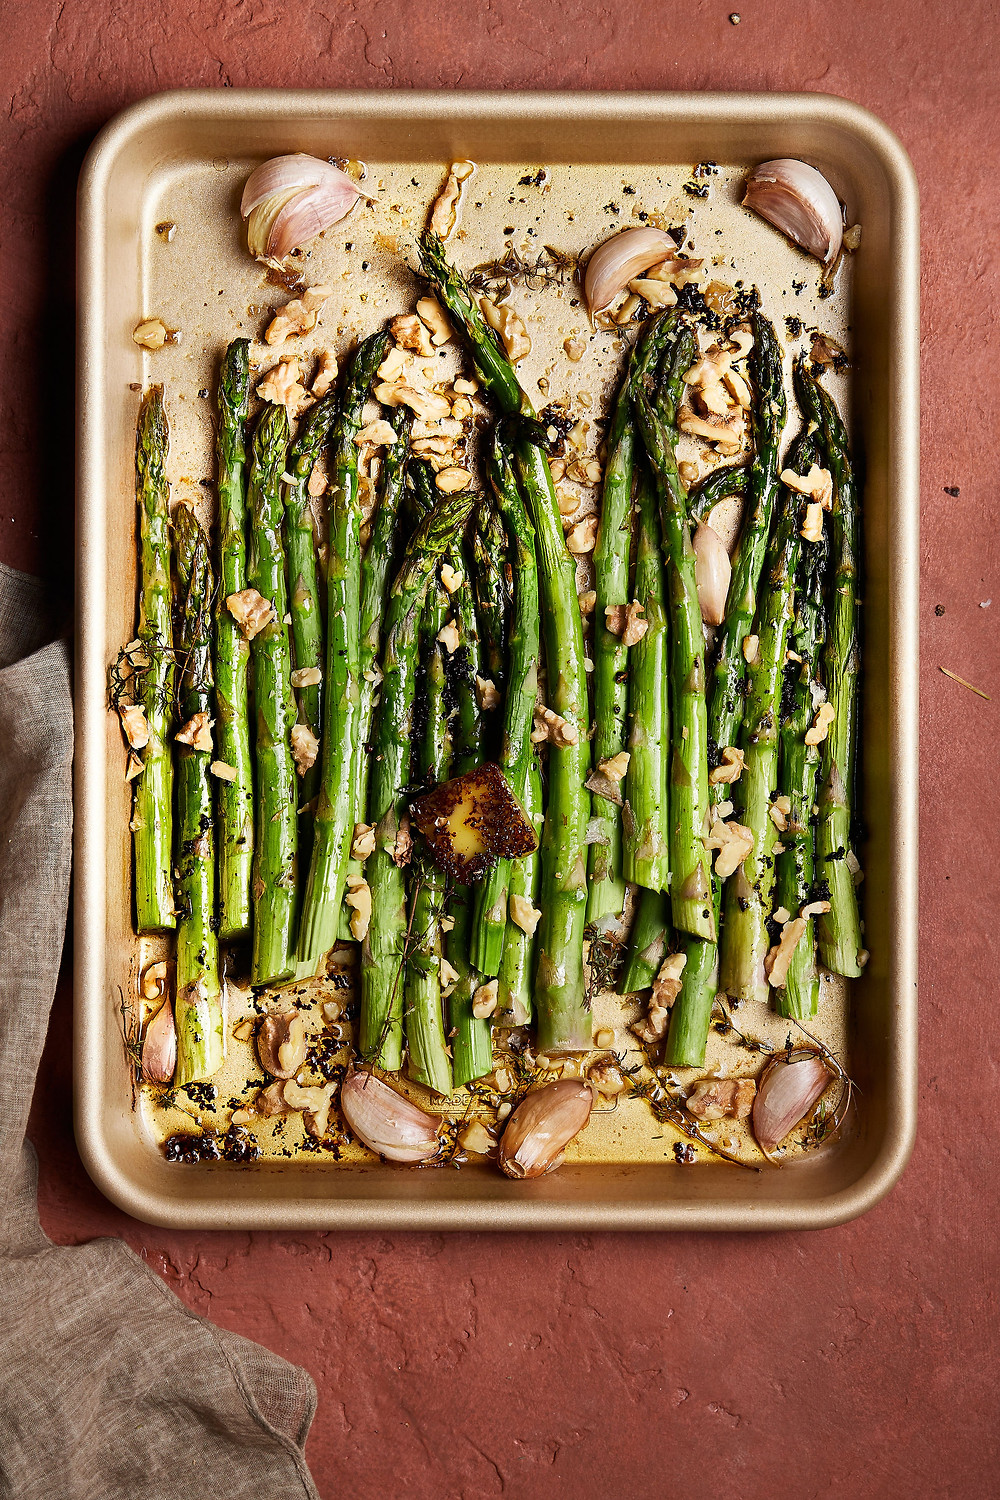 Asparagus with Brown Butter Cubes and Garlic Cloves - cooked